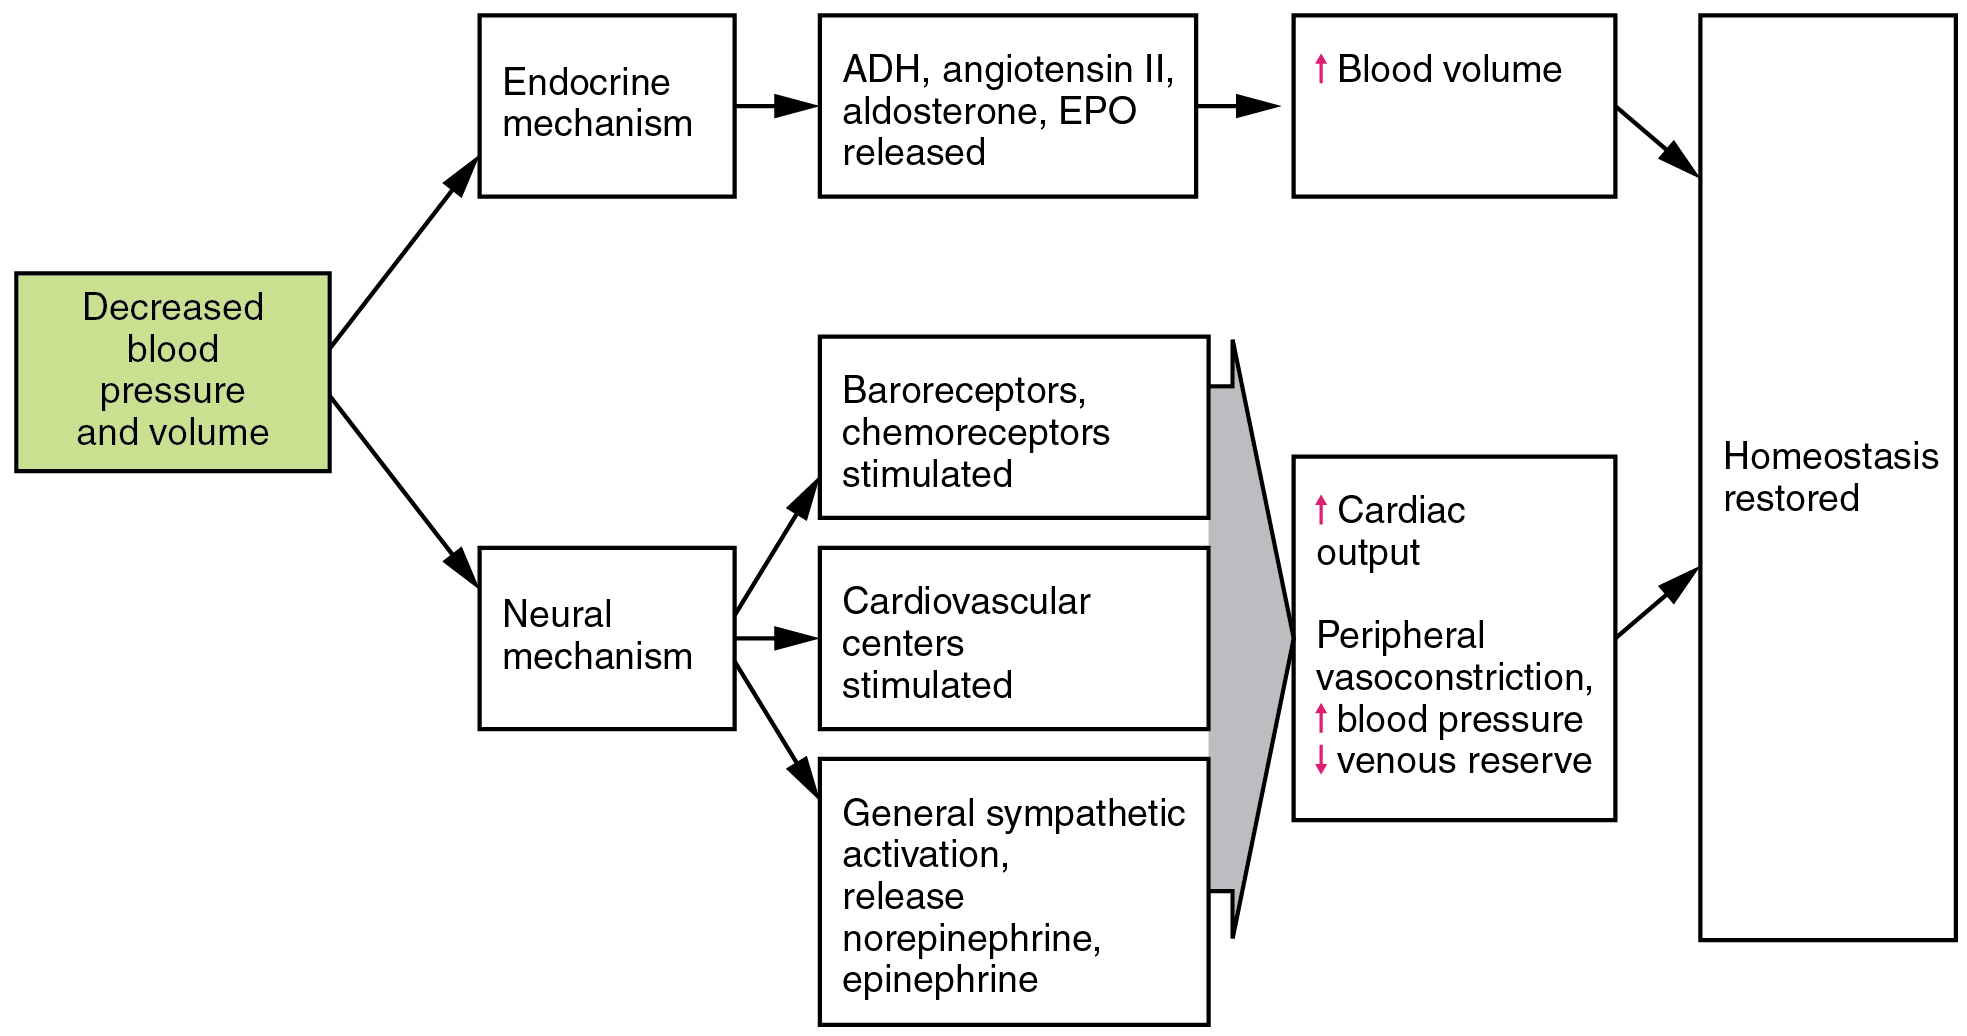 This flowchart shows the action of decreased blood pressure and volume in the neural and endocrine mechanisms.